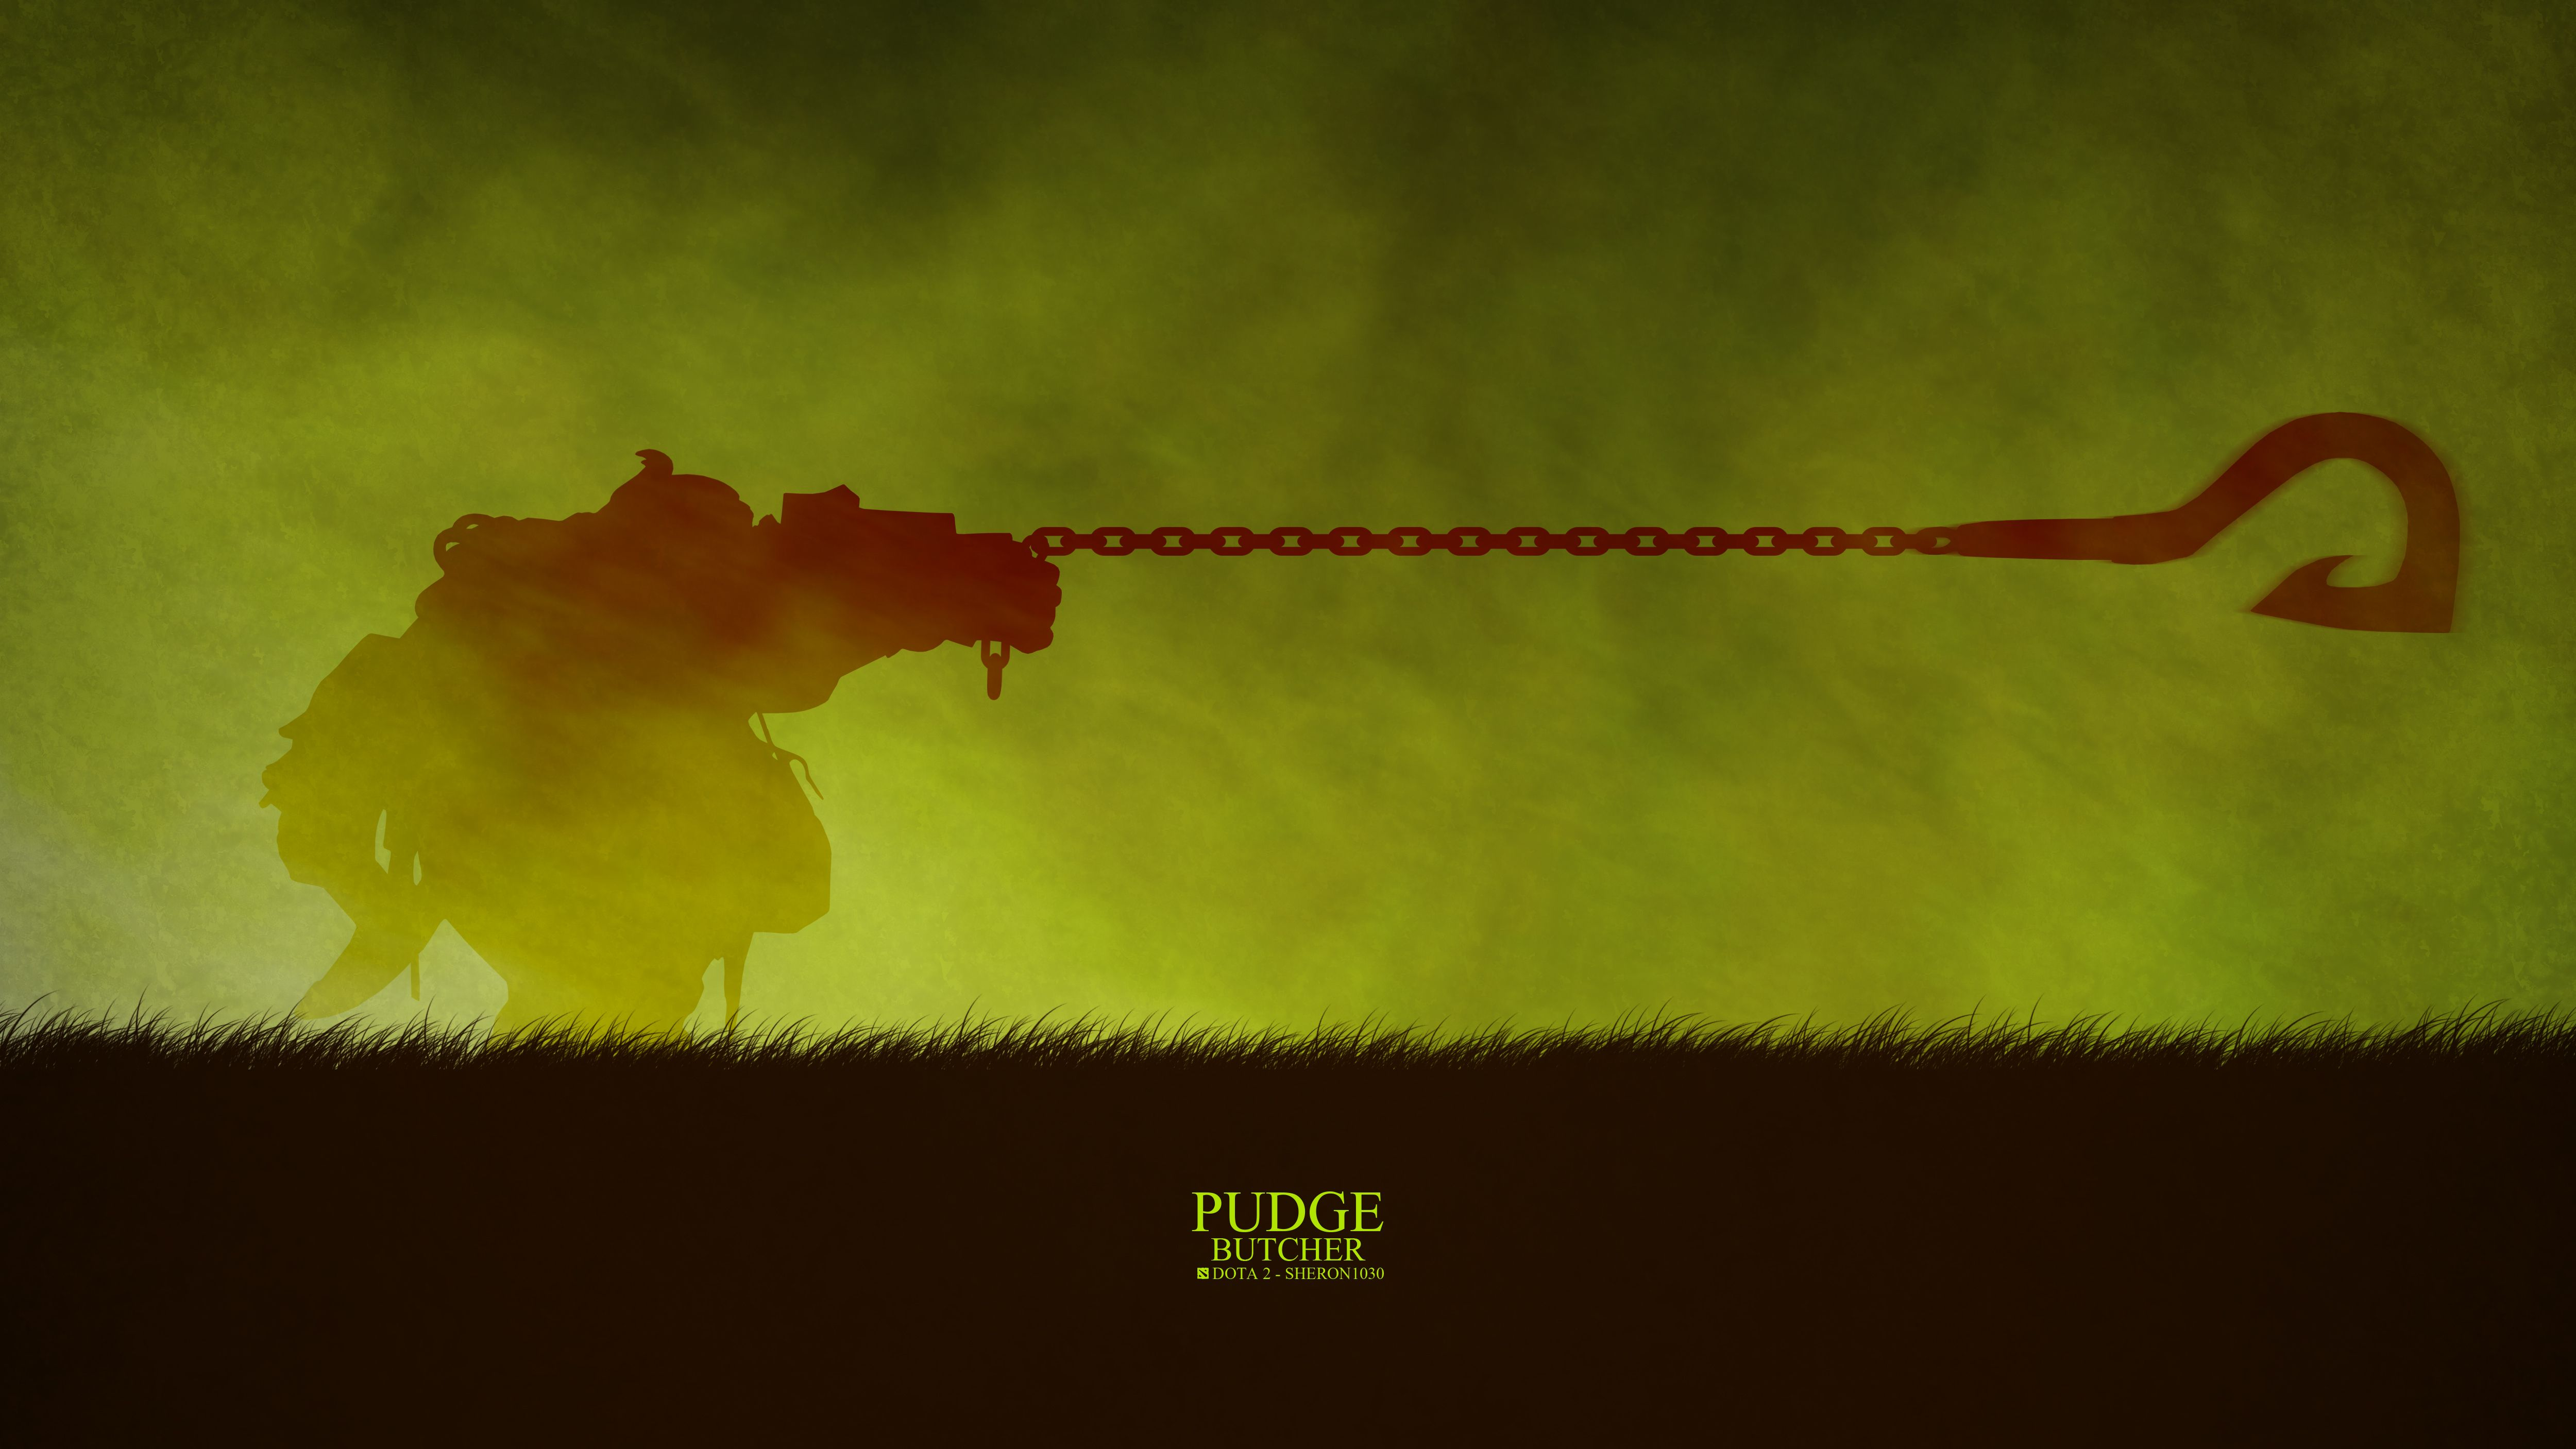 Pudge Minimal 2 Wallpaper, More: Http://dota2walls.com